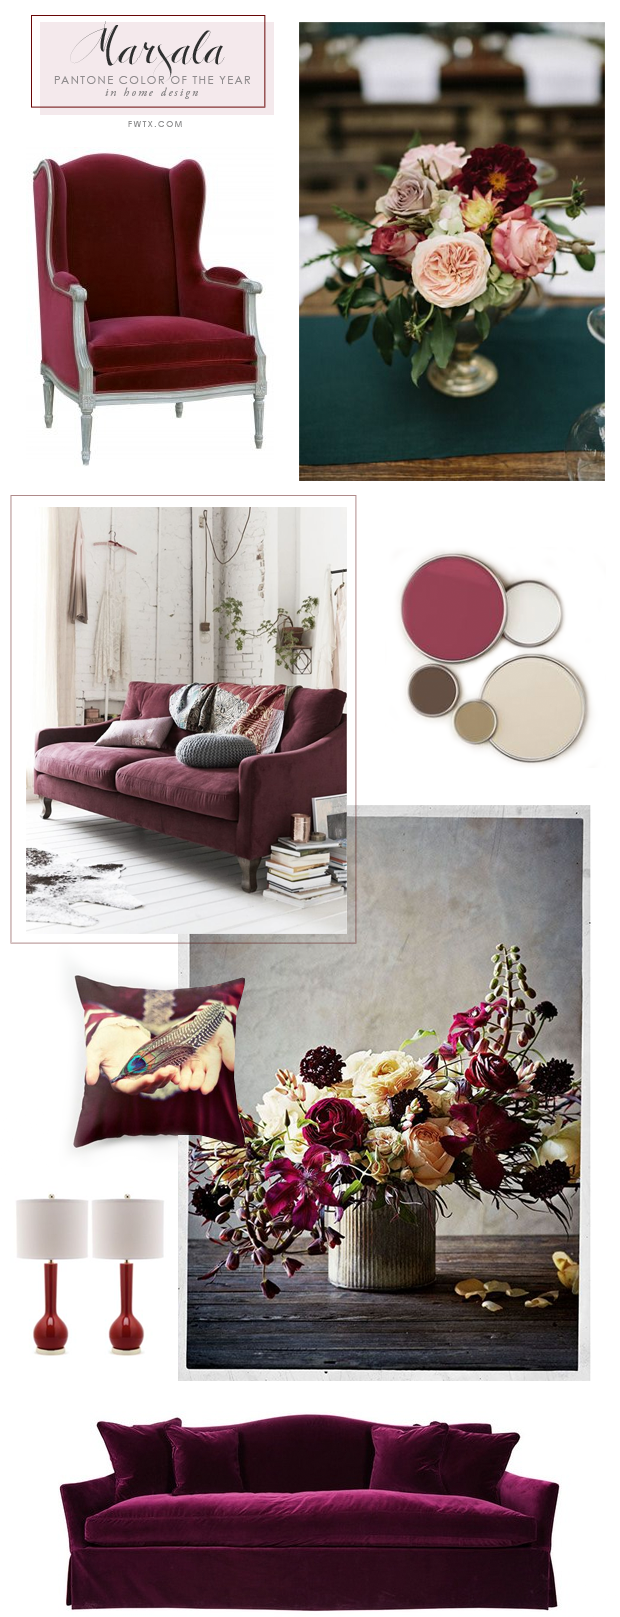 Pantone Color of the Year in Home Design | fwtx.com | Fort Worth ...